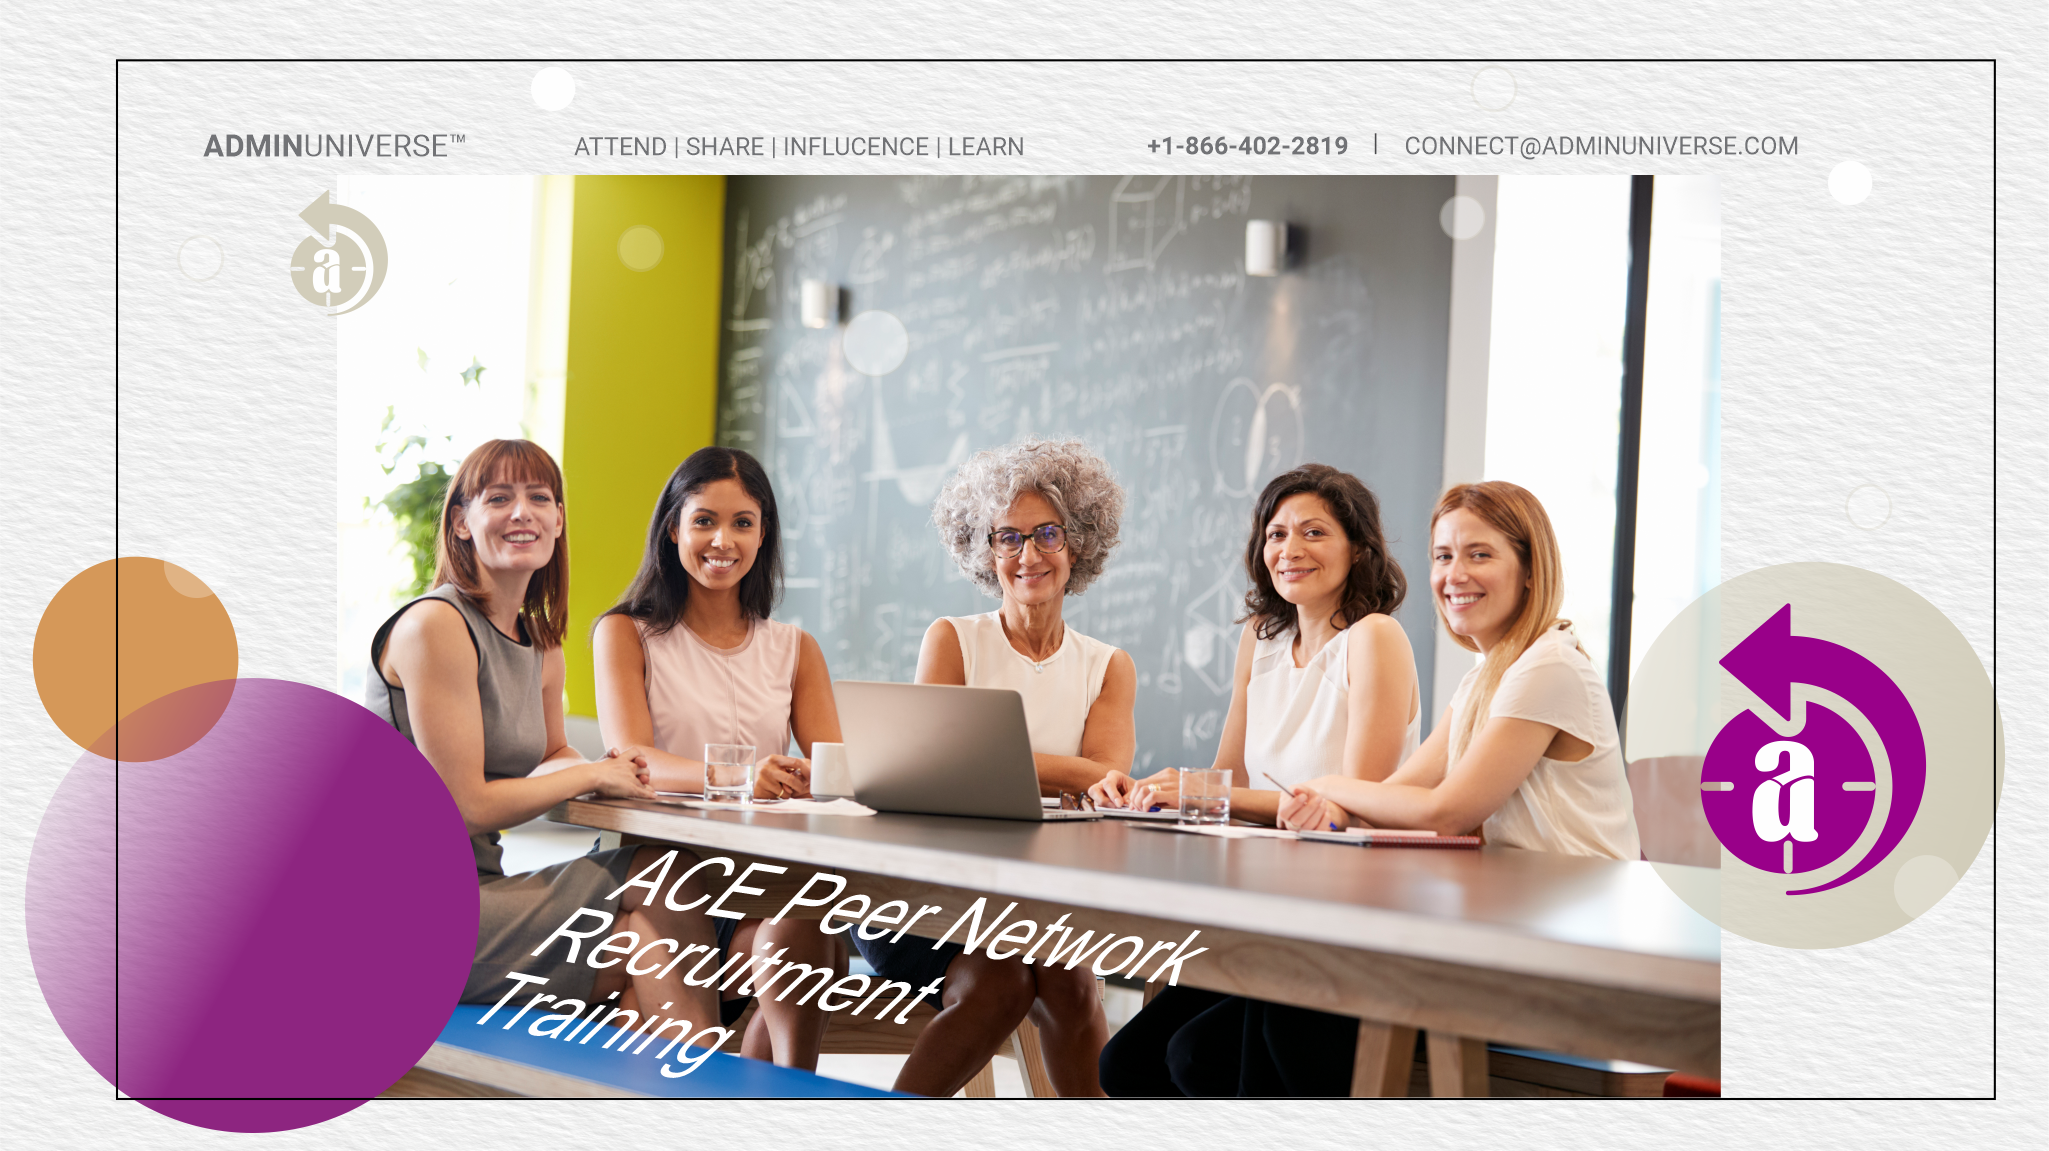 ACE Peer Learning Network™